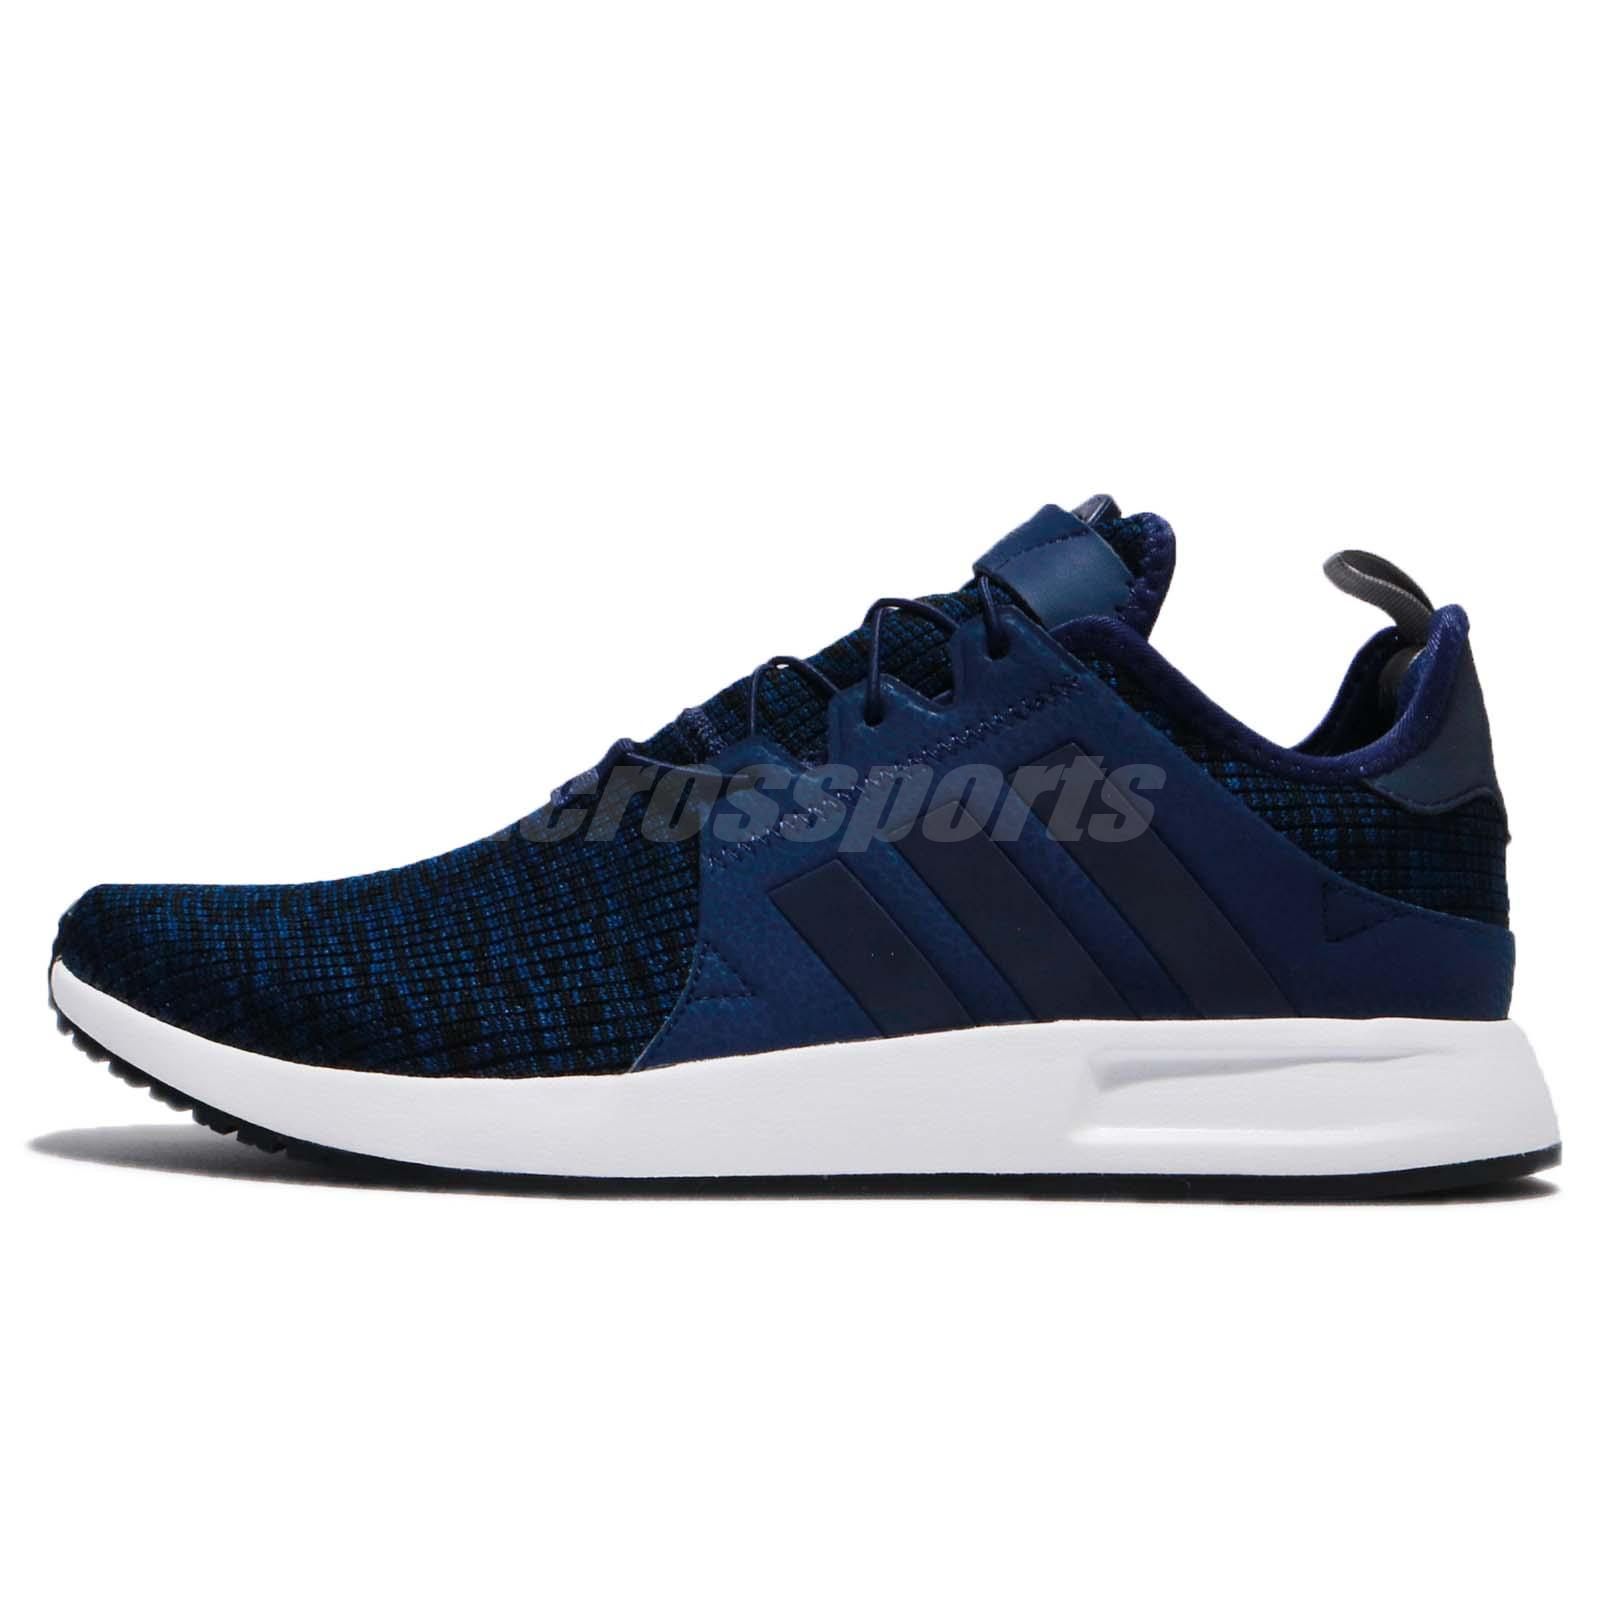 Shop Women's Sneakers At gehedoruqigimate.ml And Enjoy Free Shipping & Returns On All Orders.